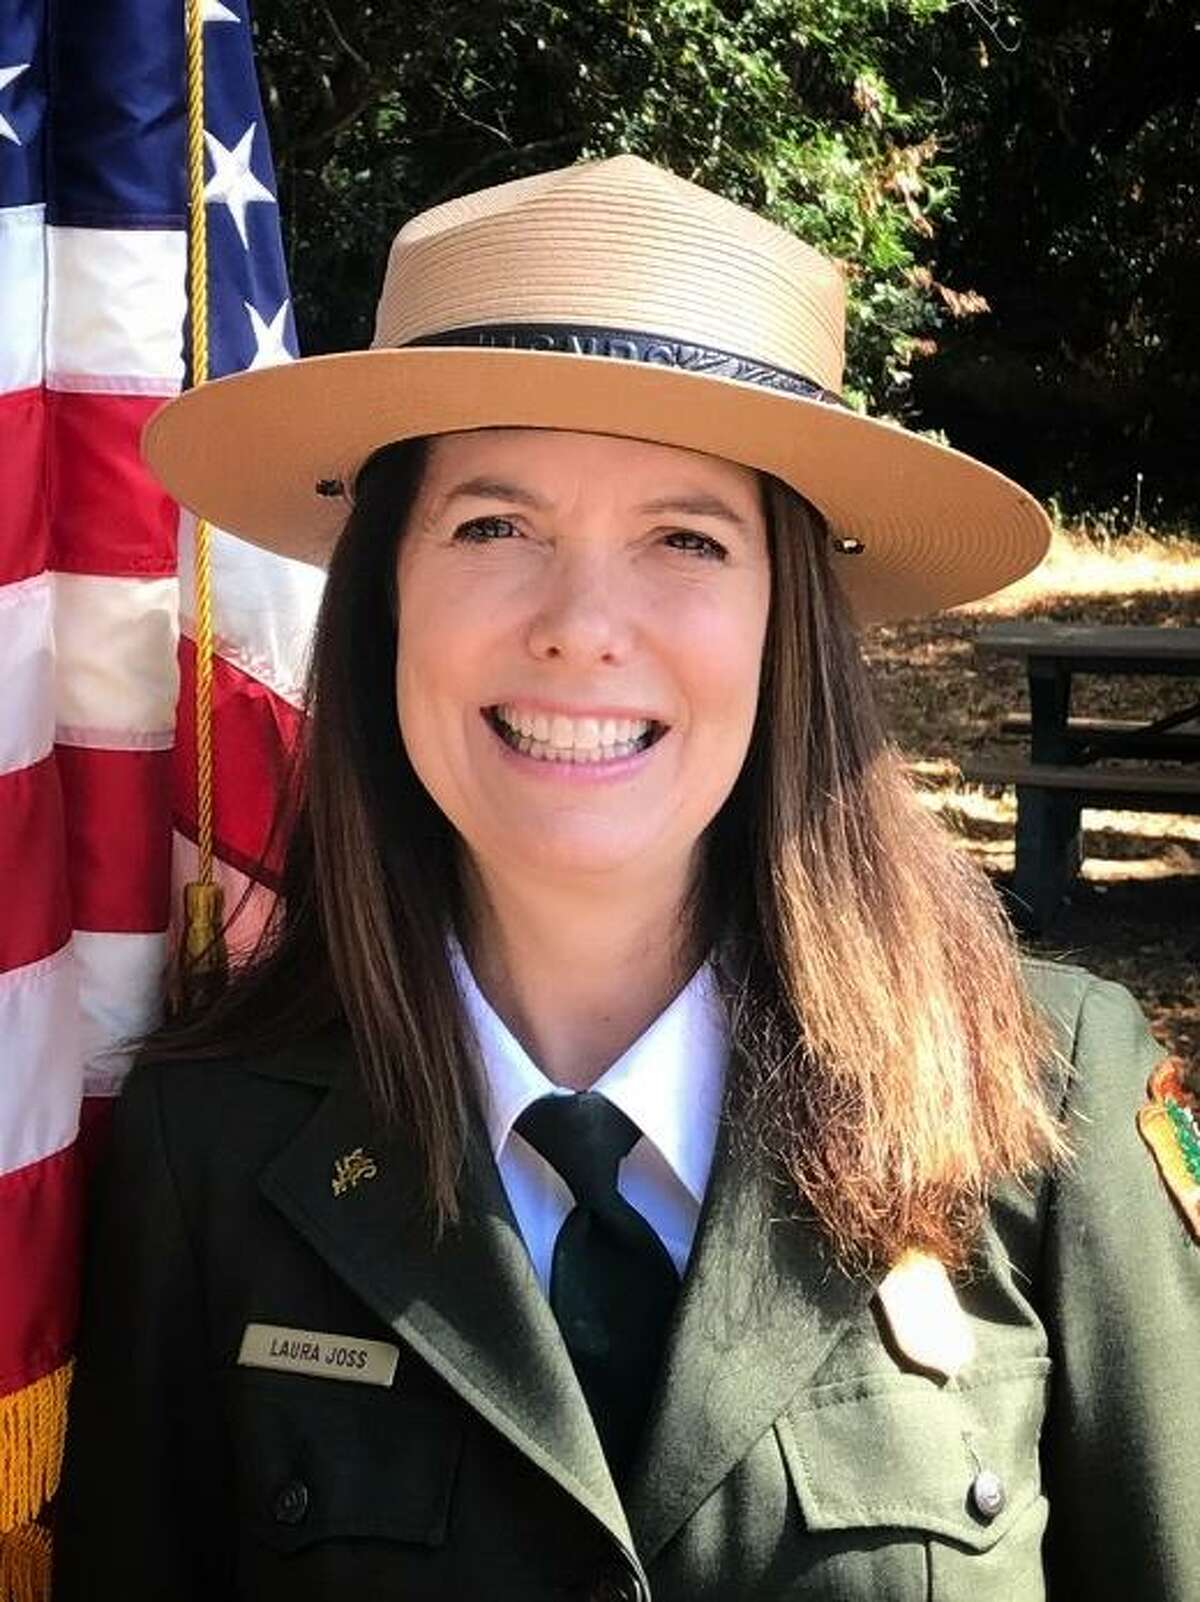 Laura E. Joss, who works as regional director for the National Park Service's Pacific West Region, was appointed as superintendent of Golden Gate National Recreation Area on Thursday.